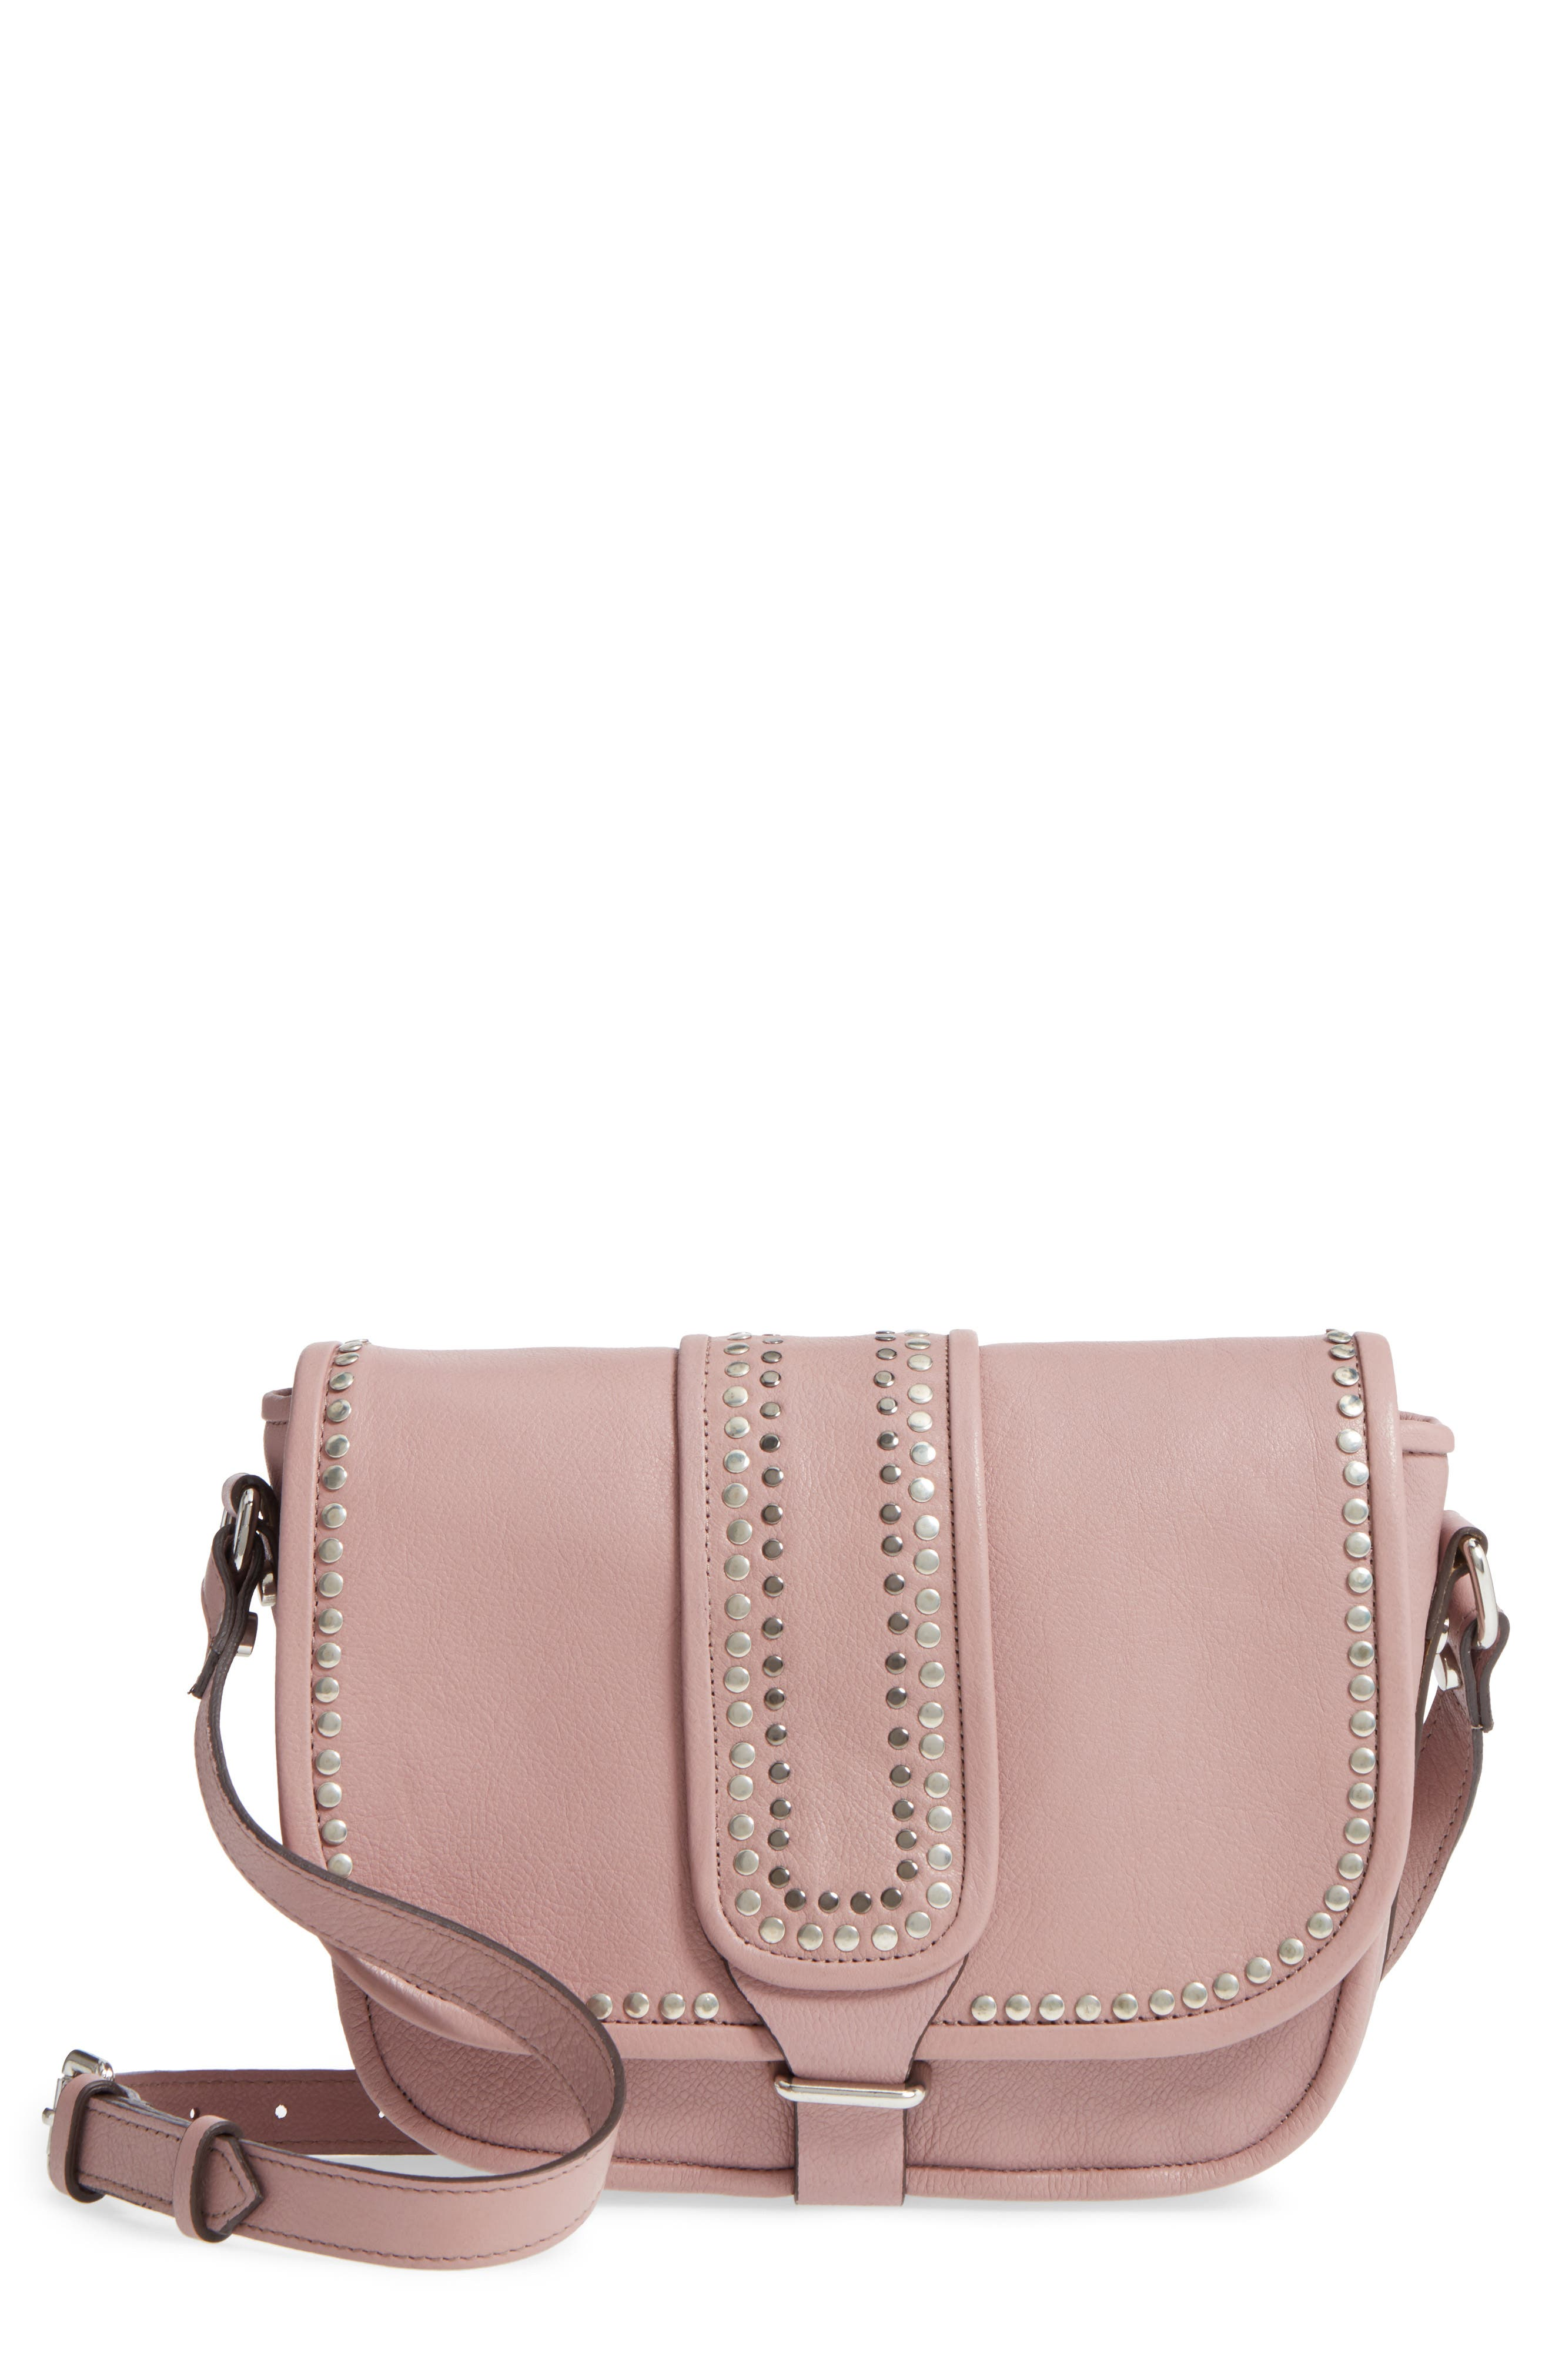 Topshop Studded Leather Shoulder Bag